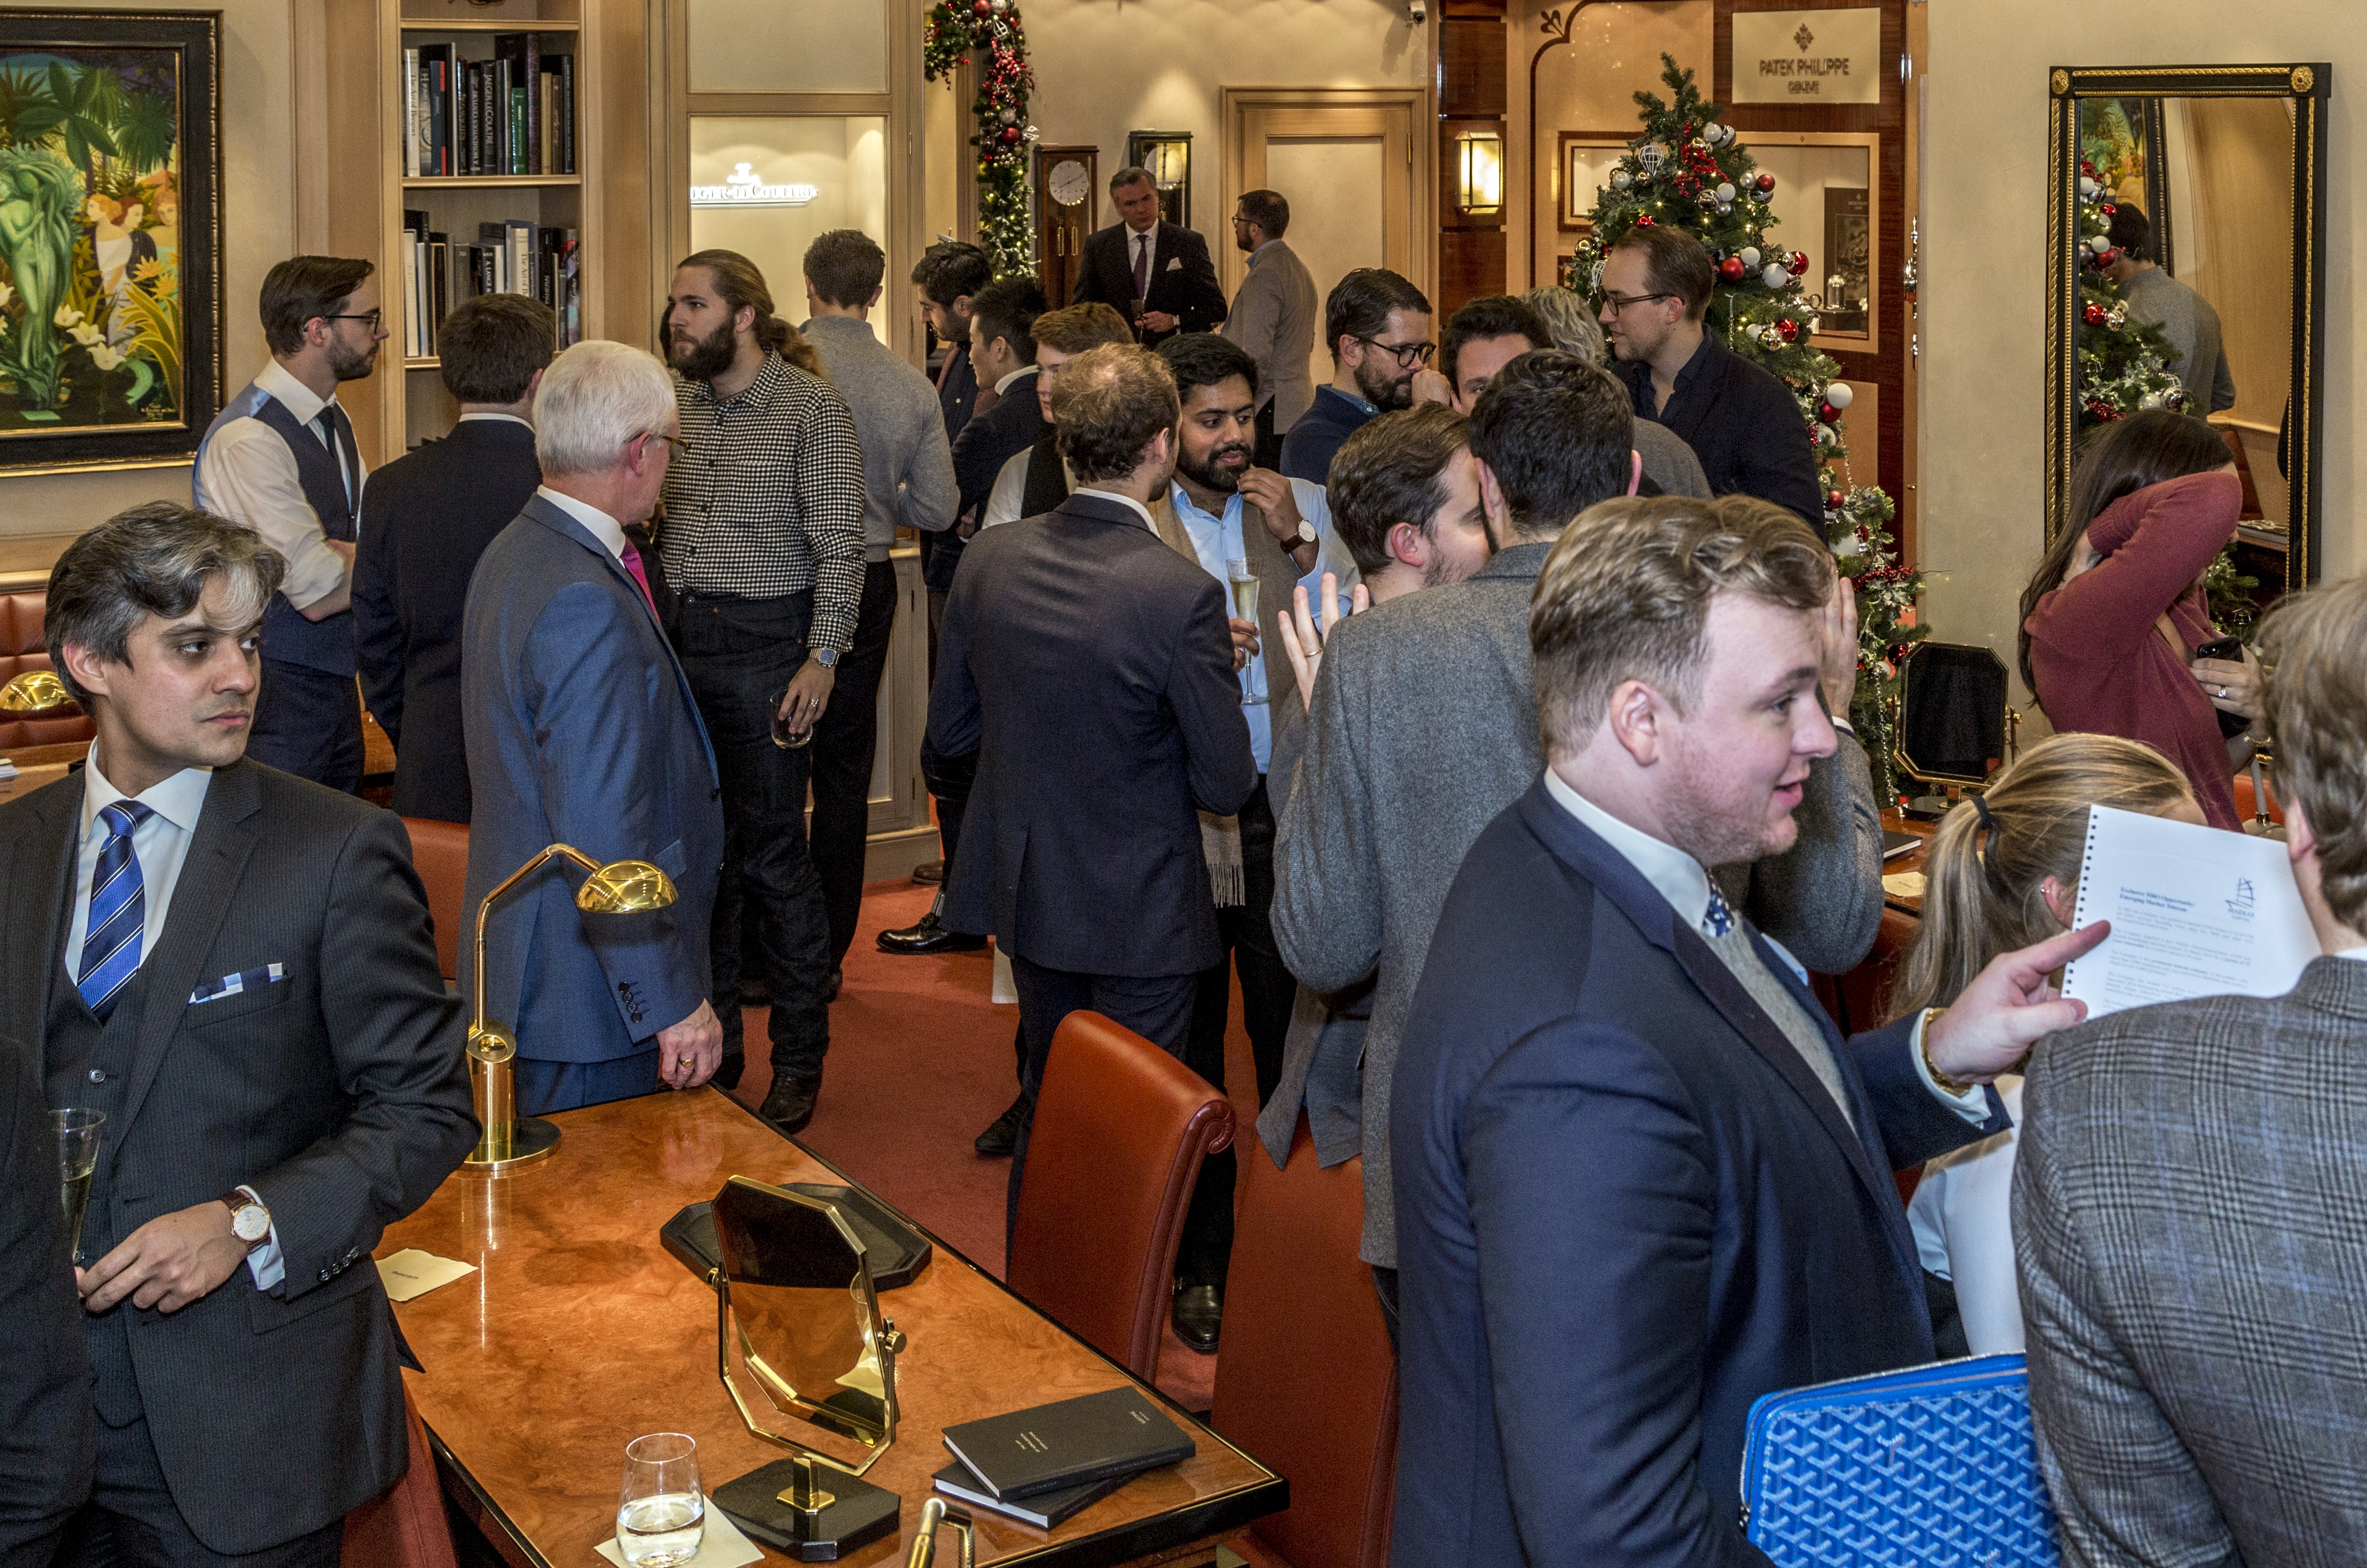 Photo Report: HODINKEE Hosts A Collector Get-Together At The Wempe Boutique In London Photo Report: HODINKEE Hosts A Collector Get-Together At The Wempe Boutique In London  84A8538